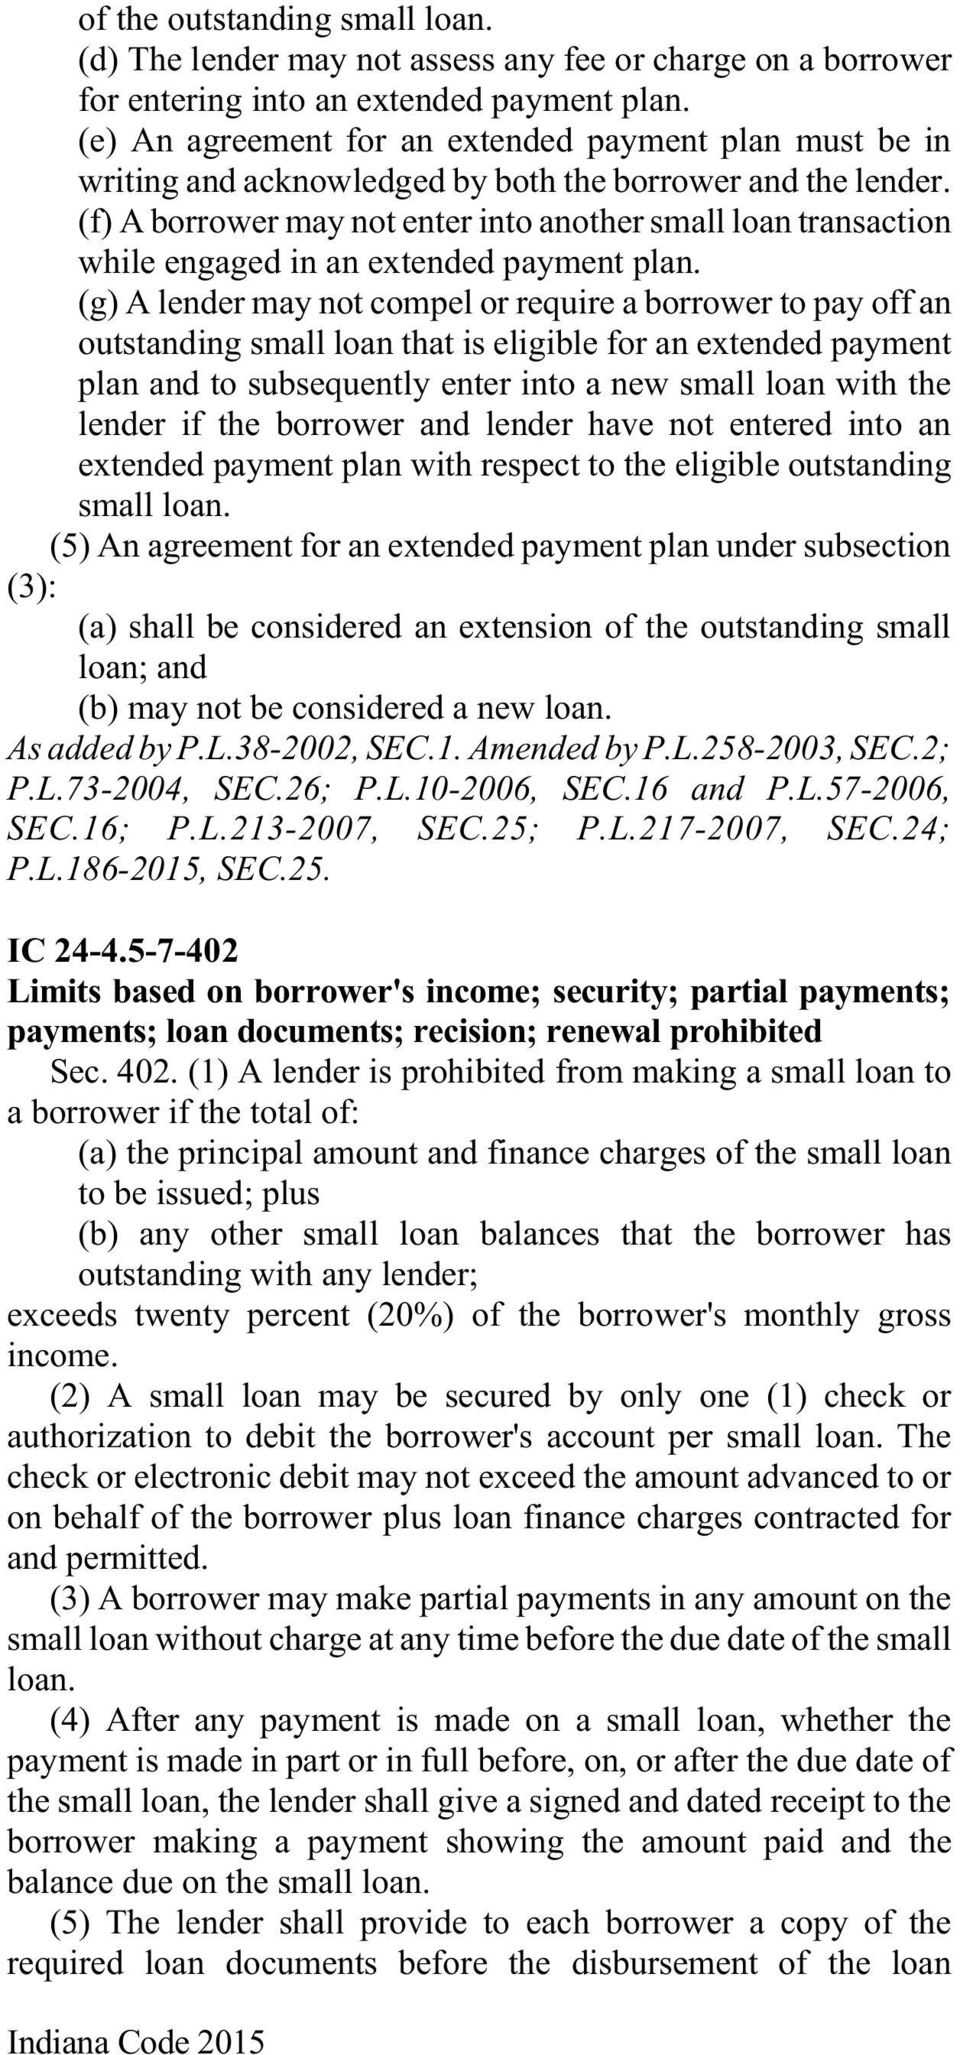 (f) A borrower may not enter into another small loan transaction while engaged in an extended payment plan.